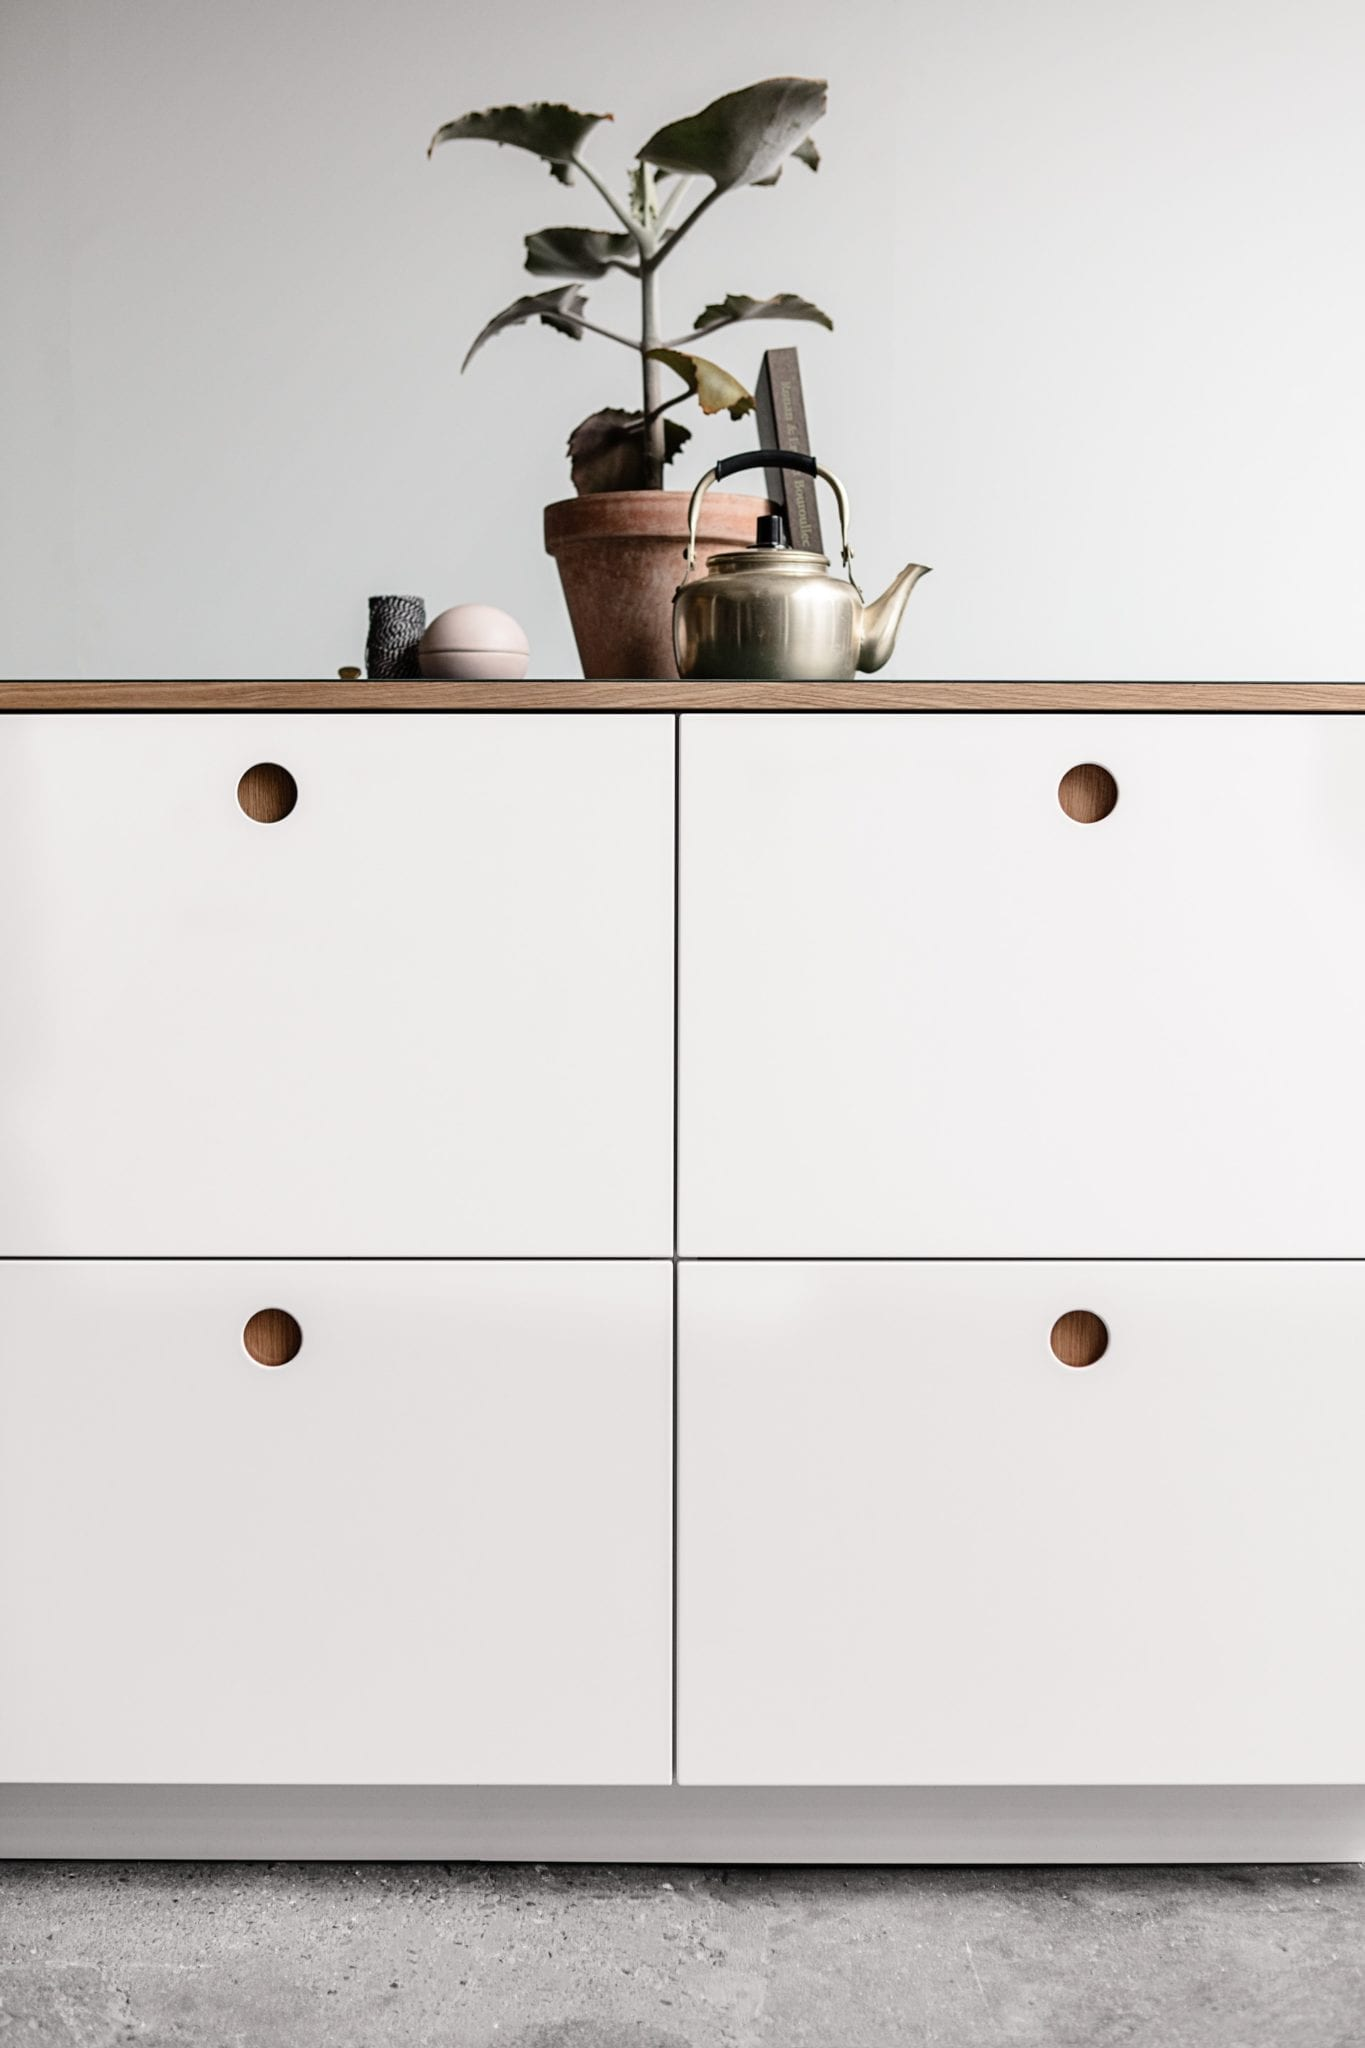 Sideboard Küche Pinterest W D Loves Reform Wit Delight Designing A Life Well Lived